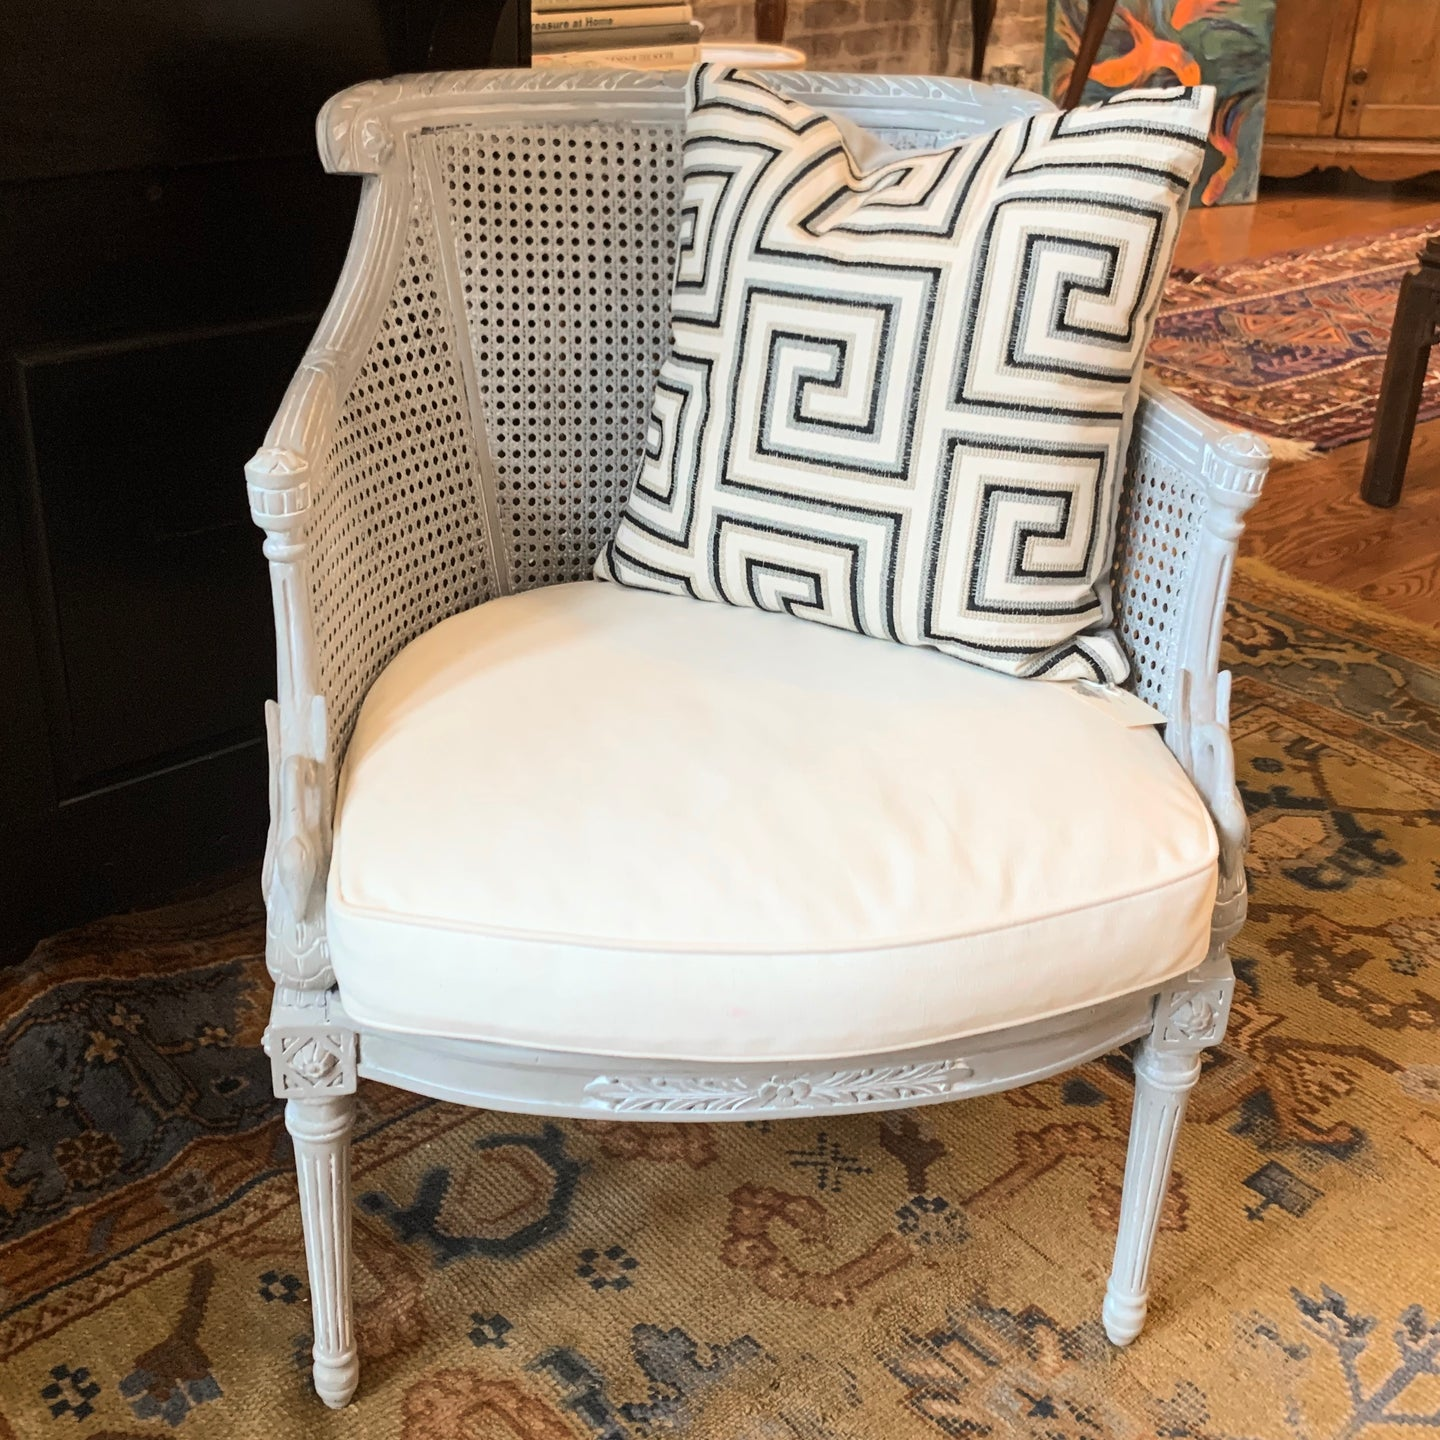 Painted Barrel-Back Cane Chair with Cushion